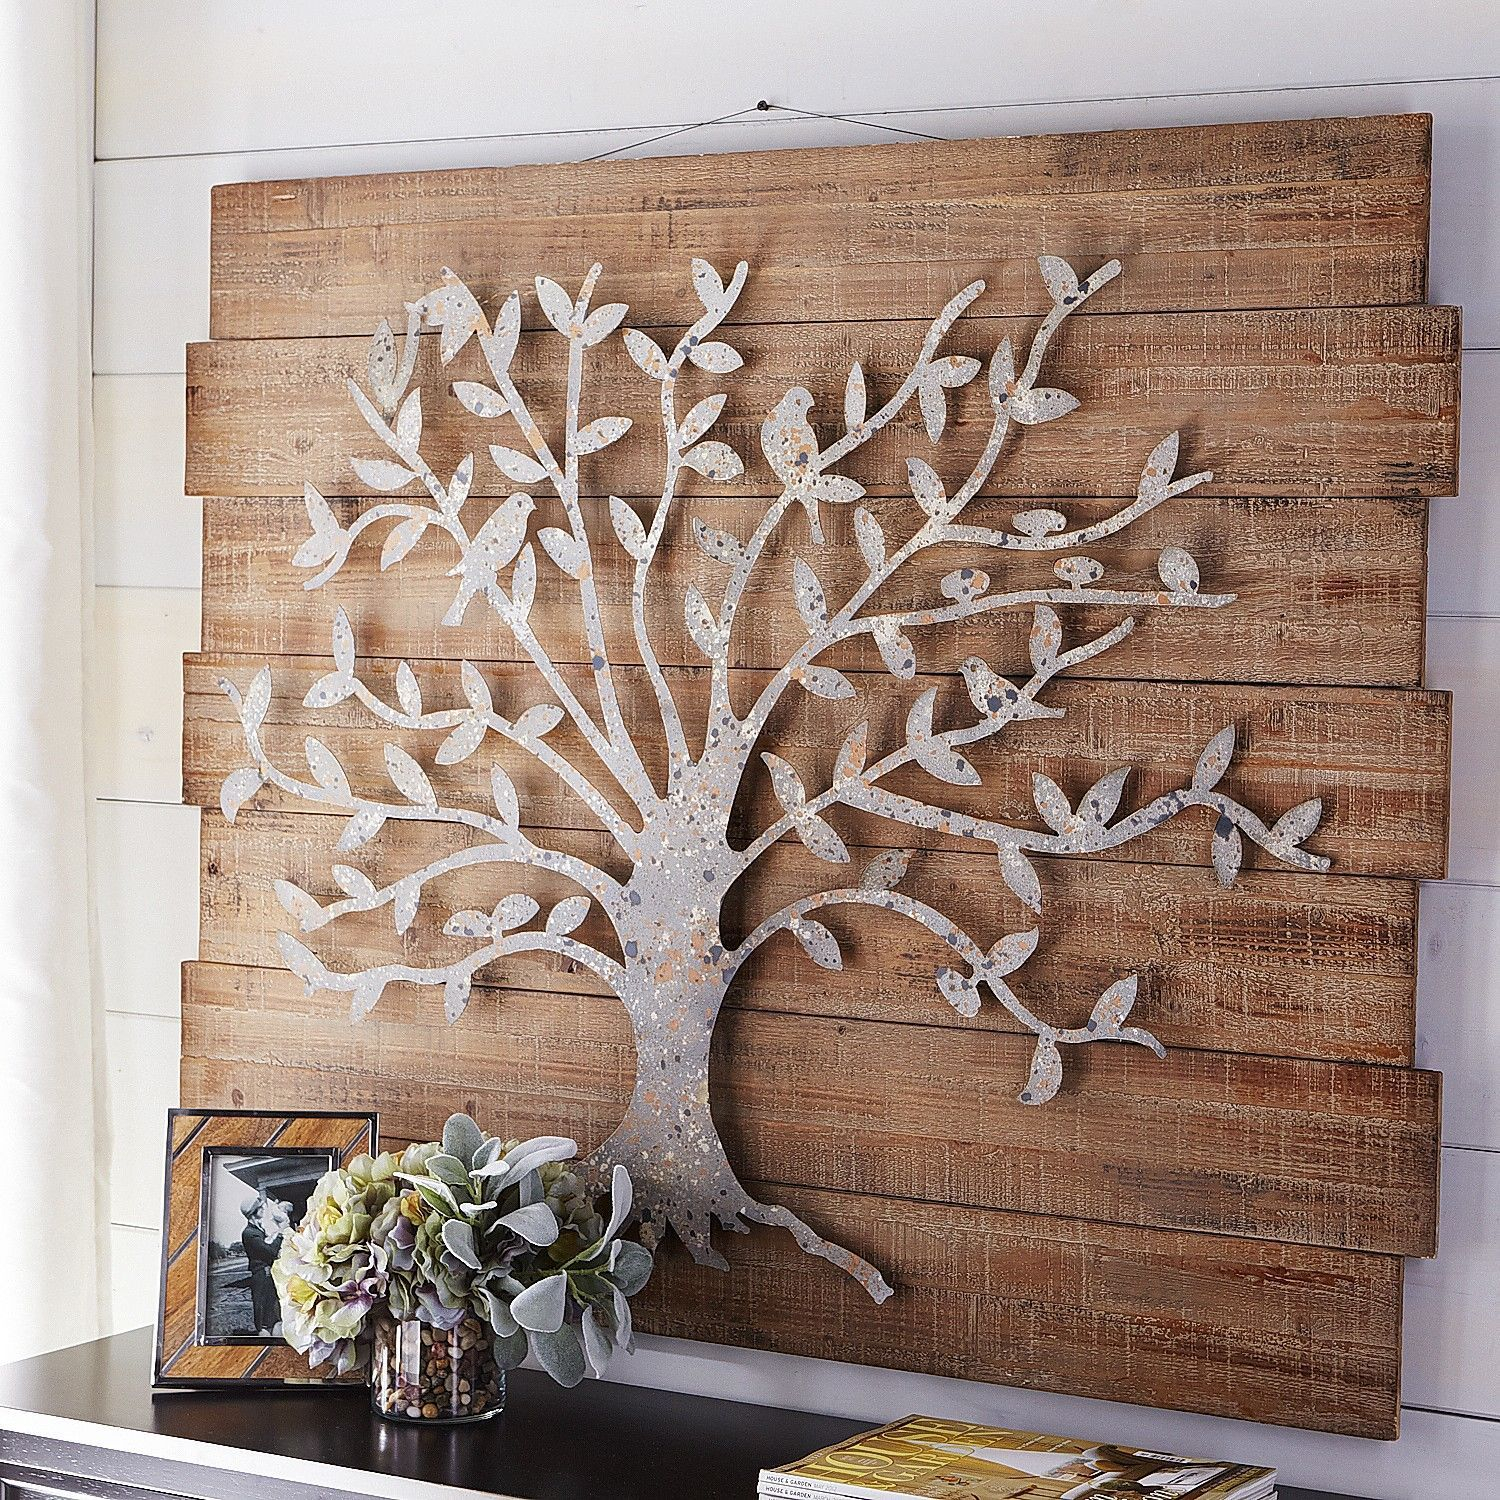 Decoration Ornamental Wall Art Metal Artwork For Living Room Metal For Most Popular Ornamental Wood And Metal Scroll Wall Decor (View 3 of 20)